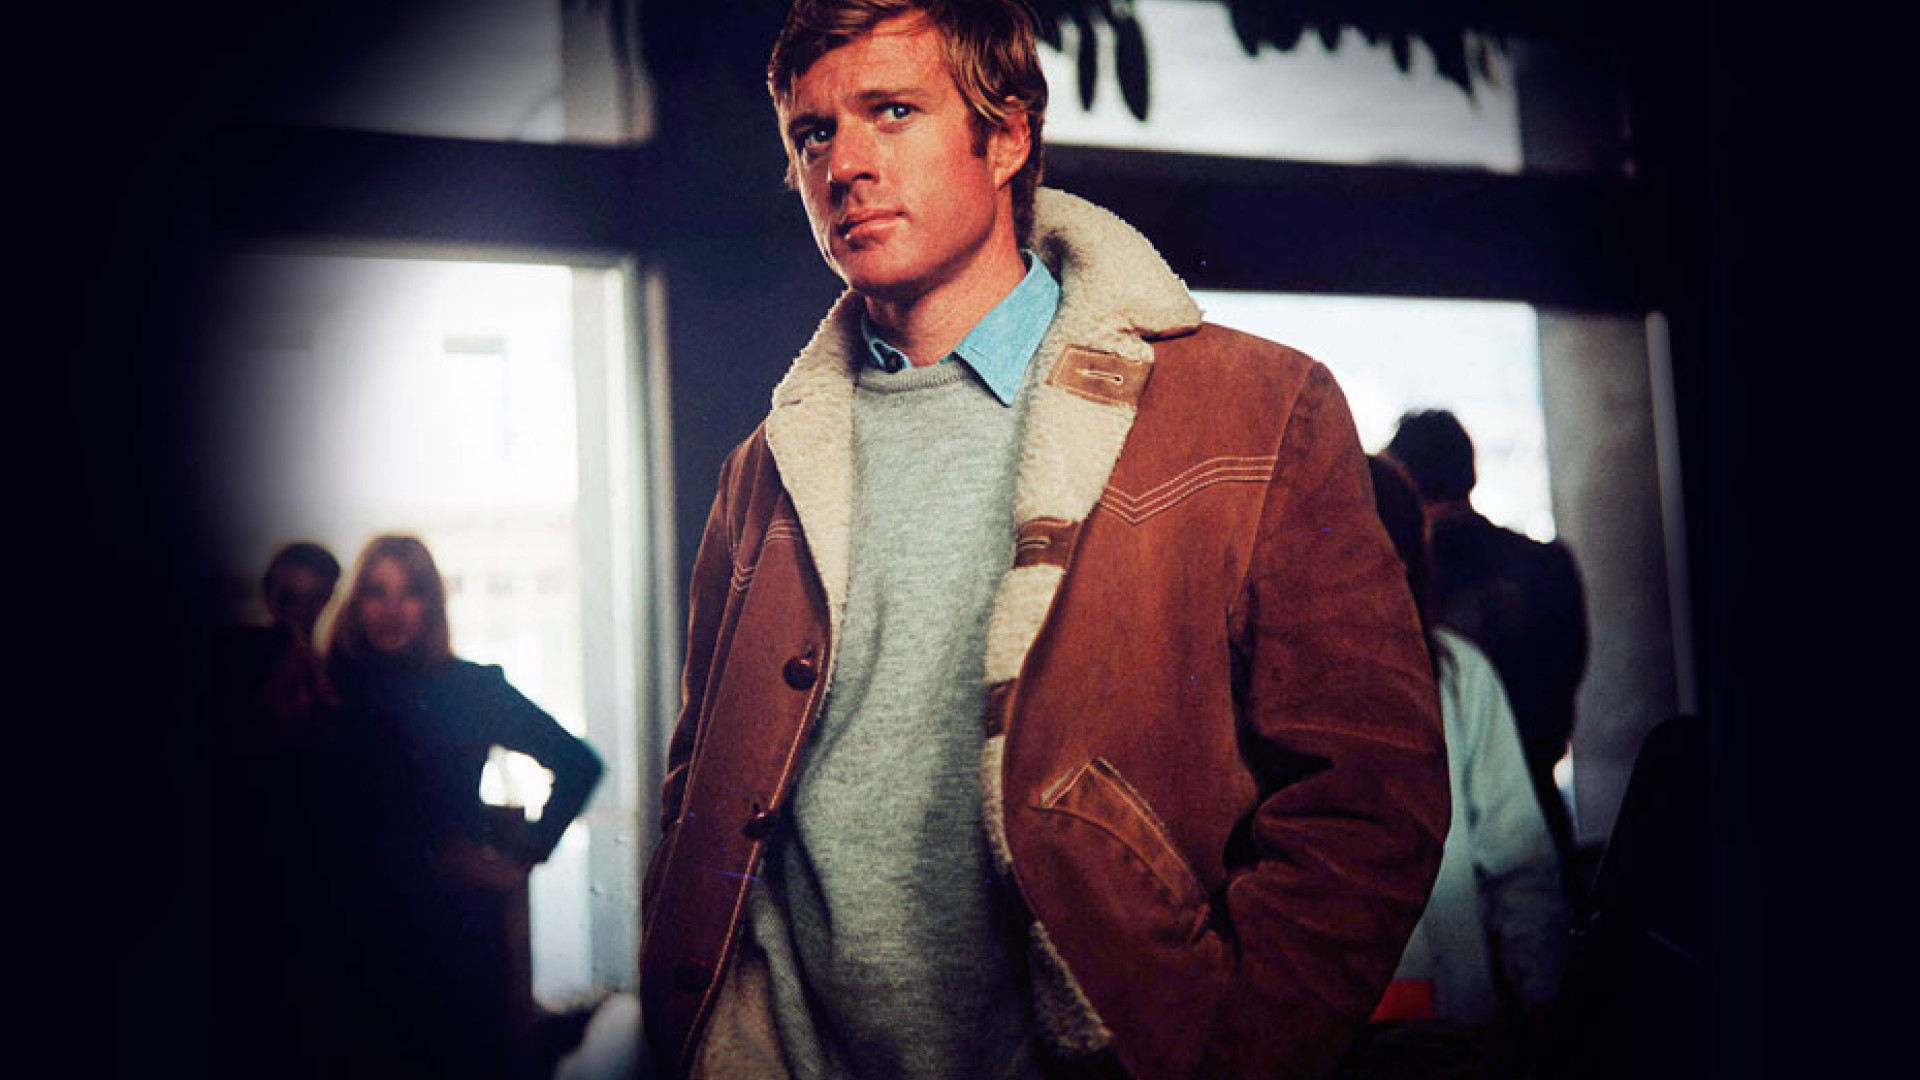 ROBERT REDFORD, PARAMOUNT / THE KOBAL COLLECTION